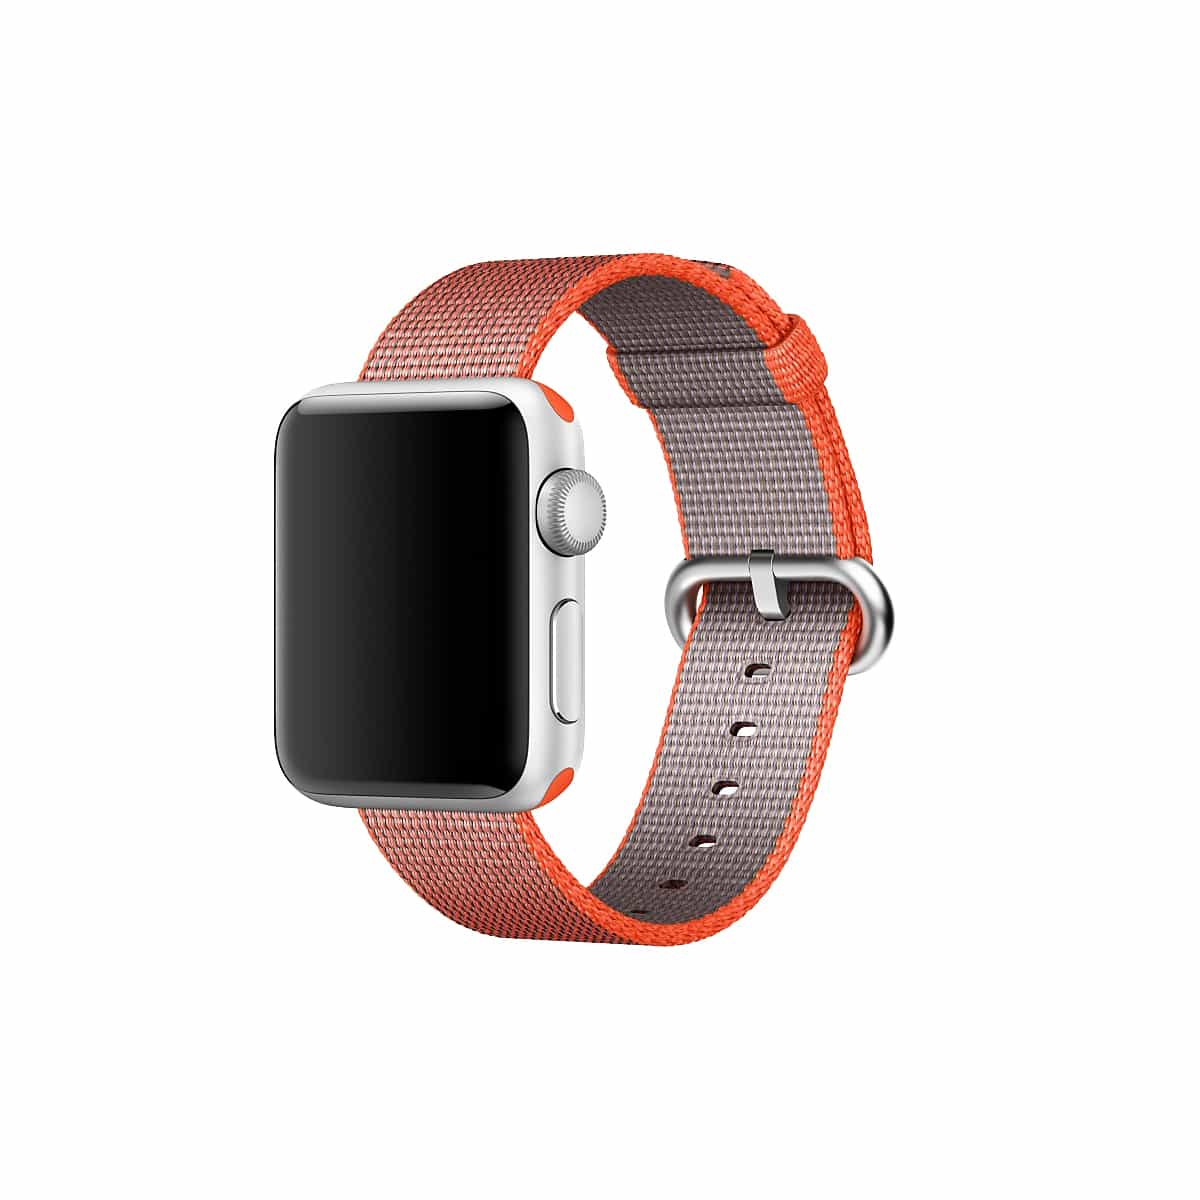 Apple Watch Woven Nylon Band Replacement Straps (38mm & 42mm)